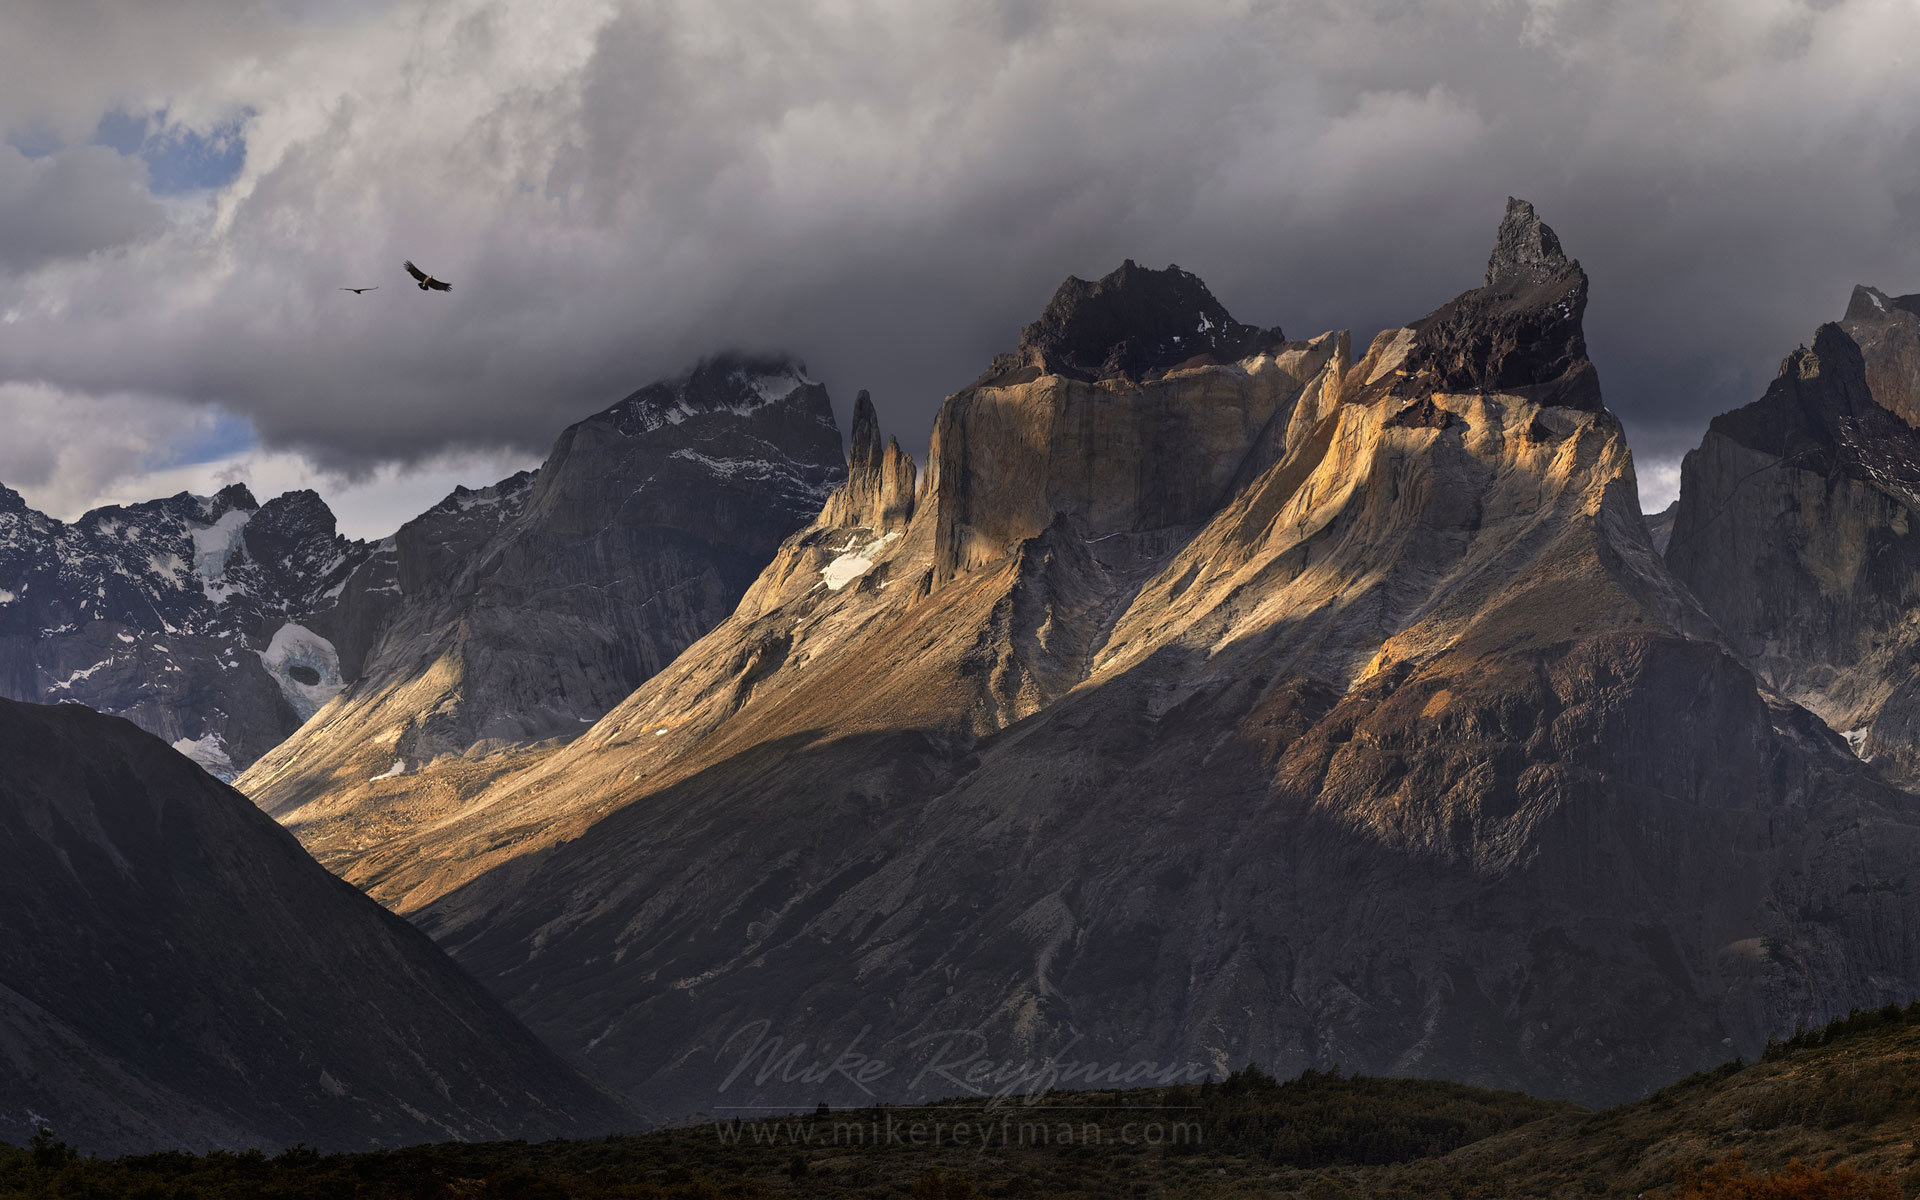 Condors flying by Cuernos del Paine. Torres del Paine National Park, Ultima Esperanza Province, Magallanes and Antartica Chilena Region XII, Patagonia, Chile. - Torres-Del-Paine-National-Park-Patagonia-Chile - Mike Reyfman Photography